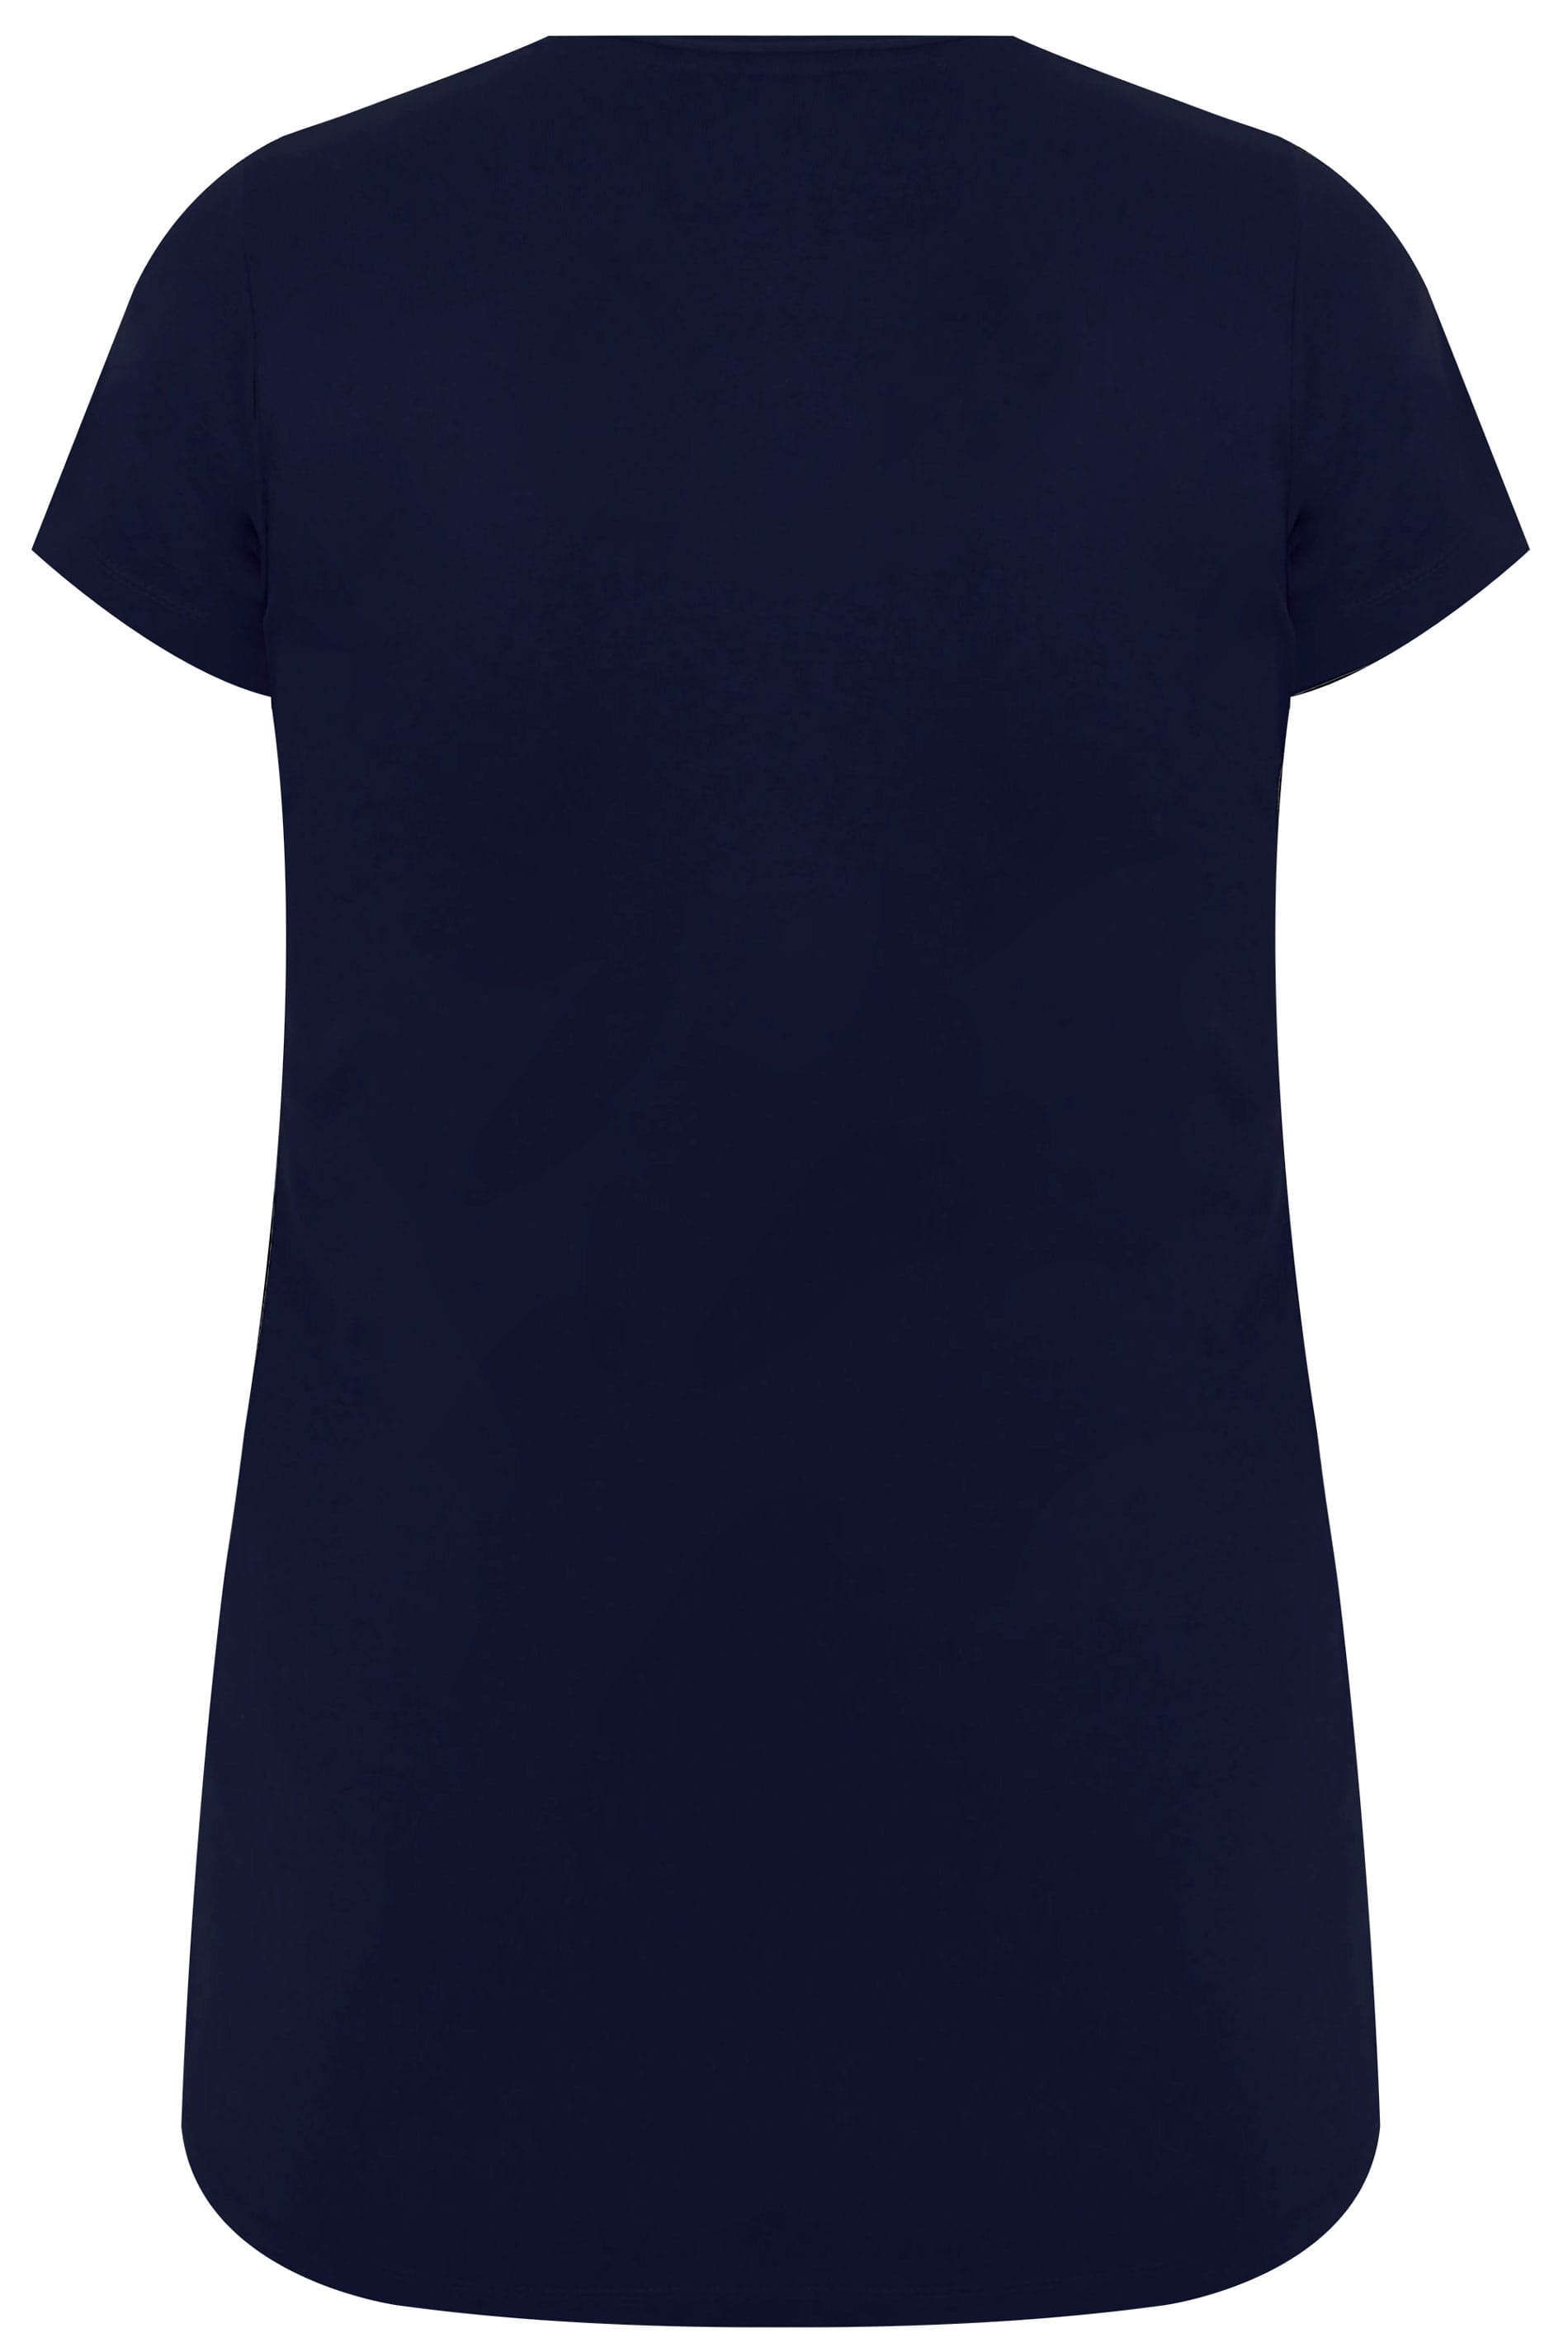 navy short sleeved v neck basic t shirt plus size 16 to 36. Black Bedroom Furniture Sets. Home Design Ideas